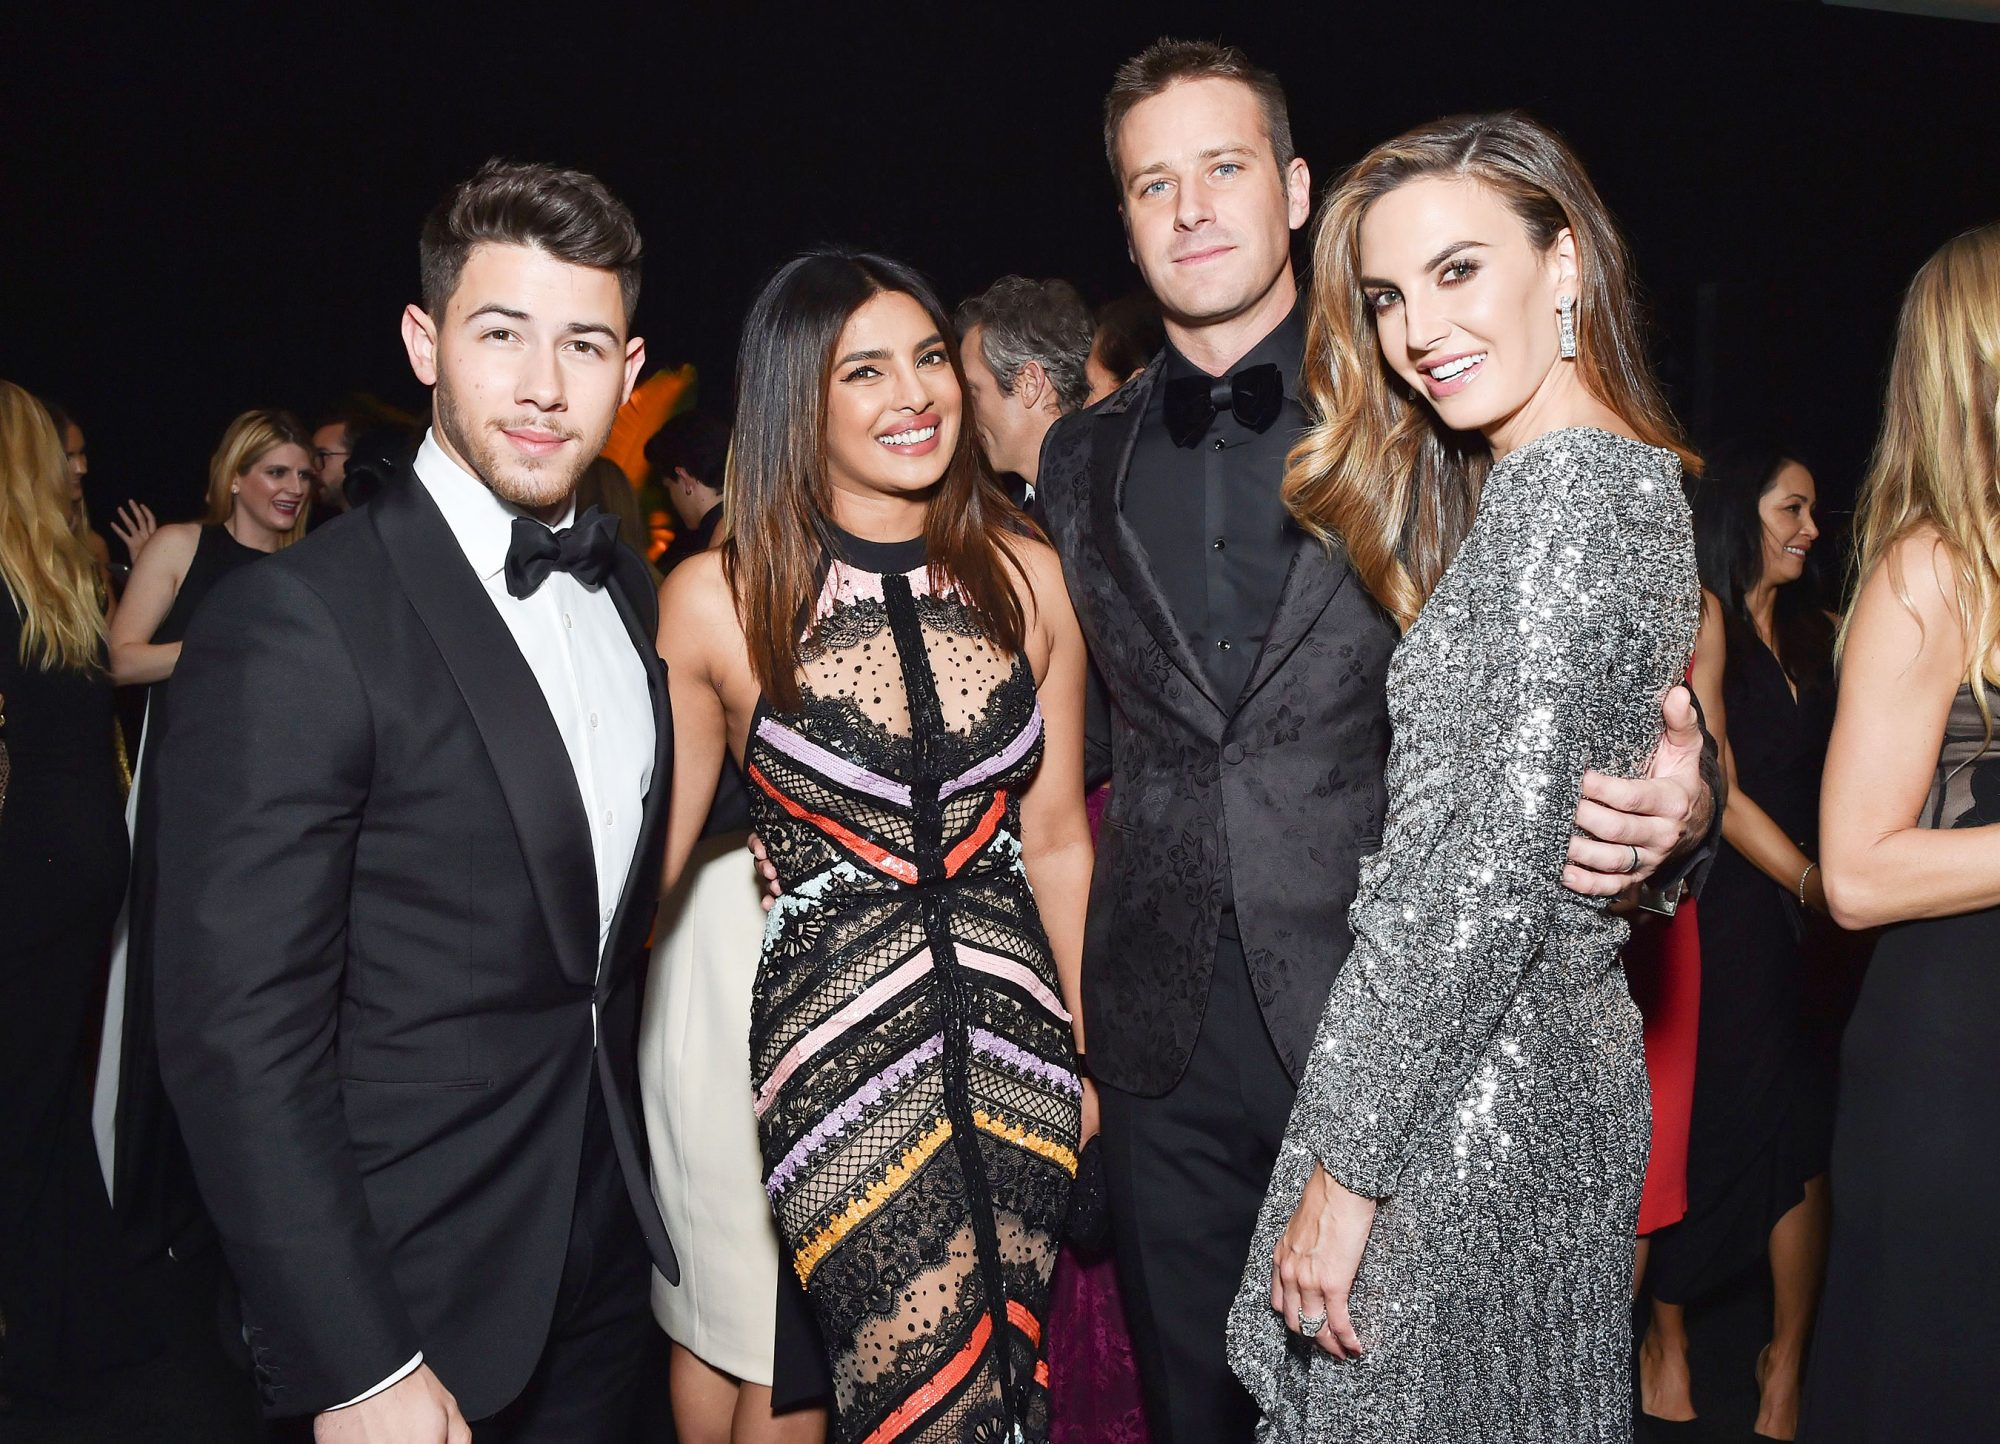 2nd Annual Learning Lab Ventures Winter Gala, Inside, The Beverly Hills Hotel, Los Angeles, USA - 31 Jan 2019